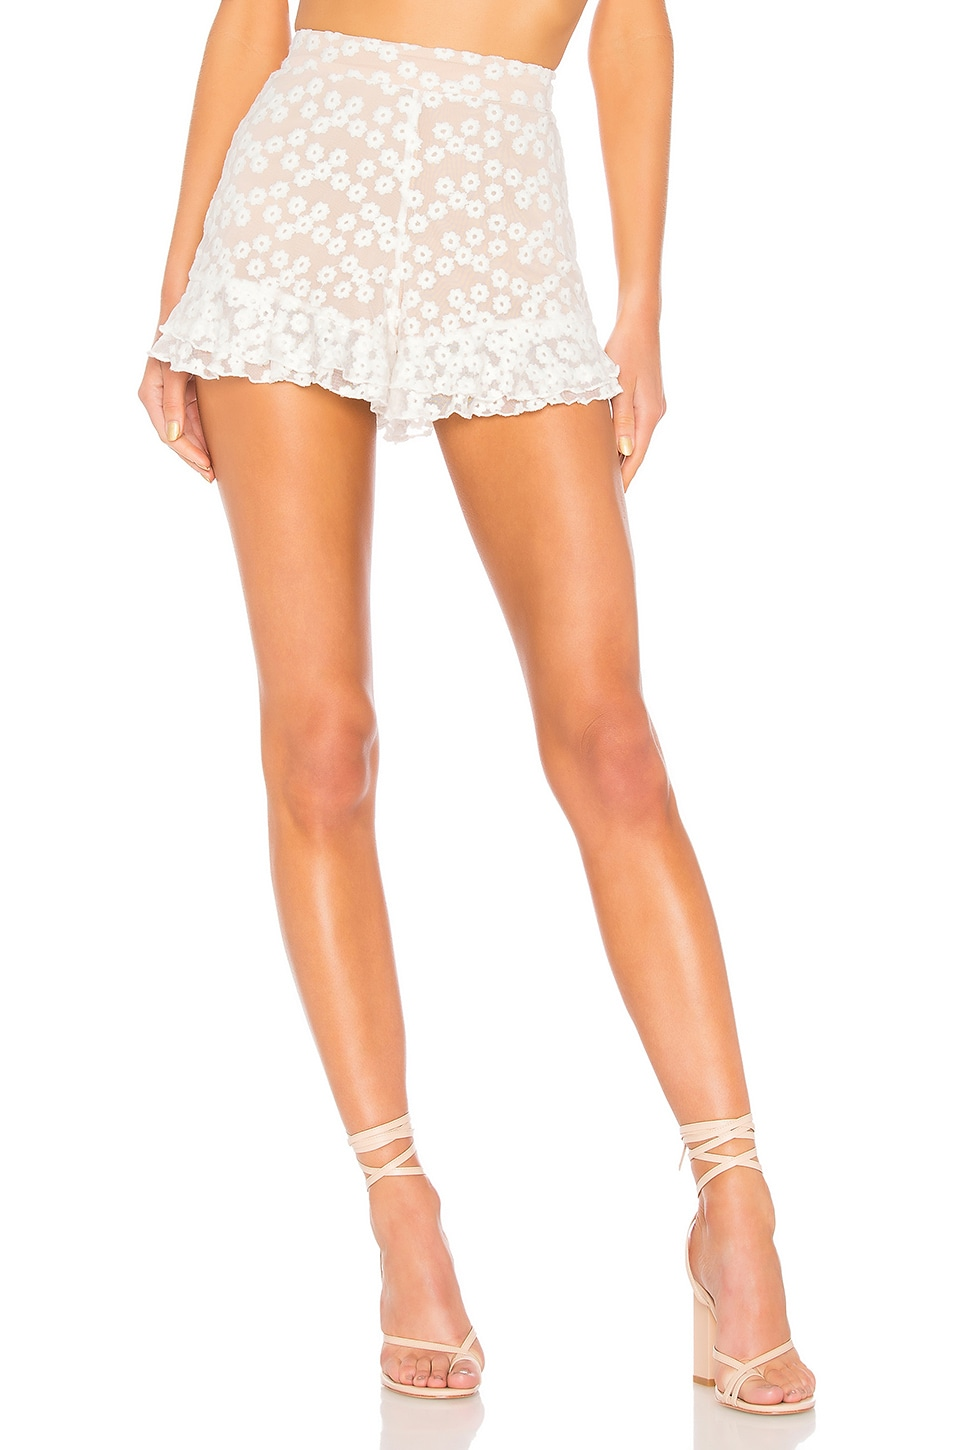 MAJORELLE Whitney Shorts in White